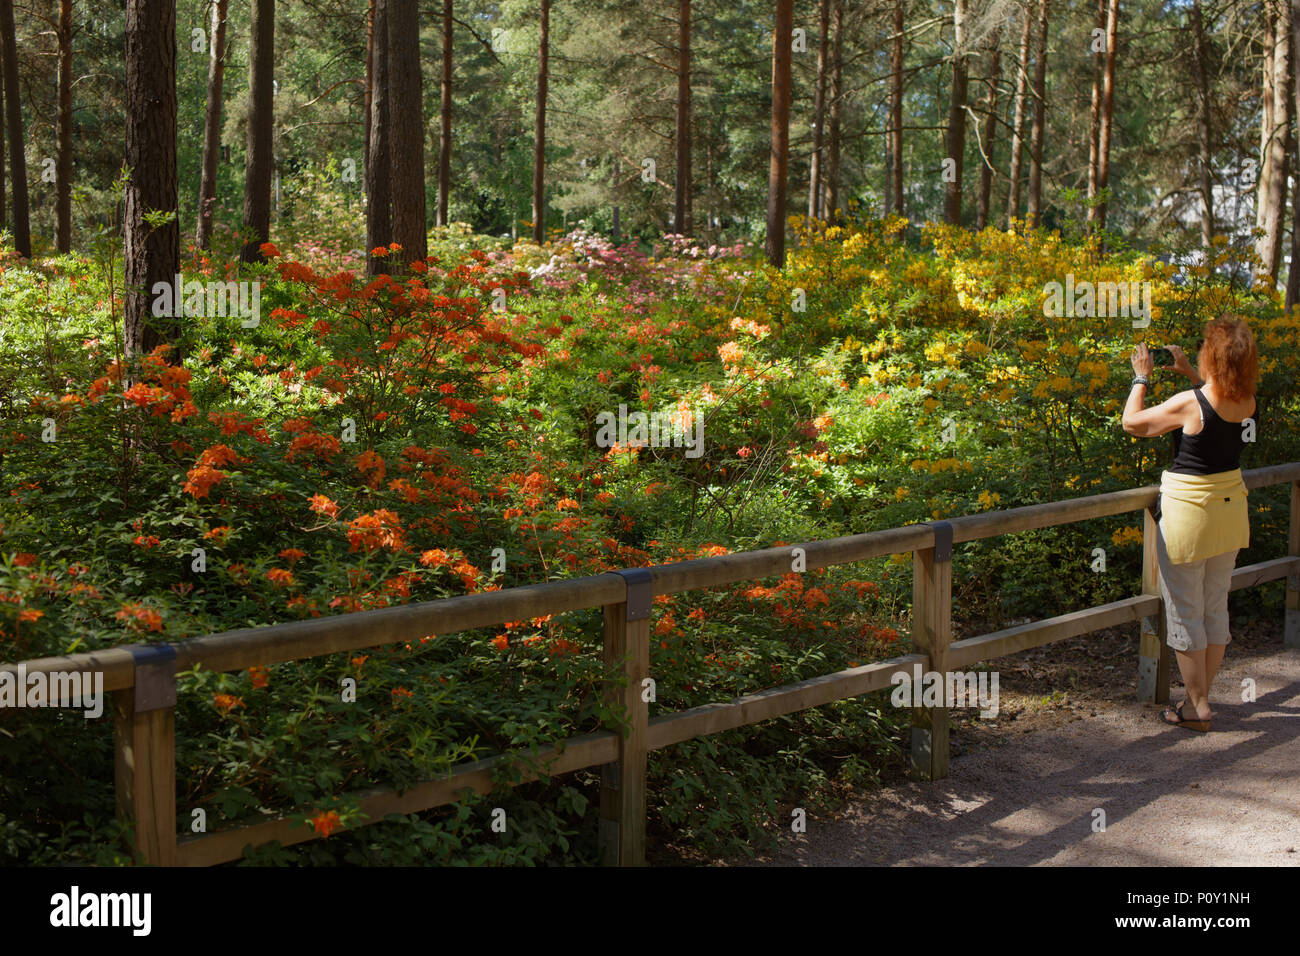 Helsinki, Finland, 10th June, 2018. People walking and make photos of azaleas in Haaga Rhododendron Park. The park is created by Helsinki university as the experimental site Credit: StockphotoVideo/Alamy Live News - Stock Image